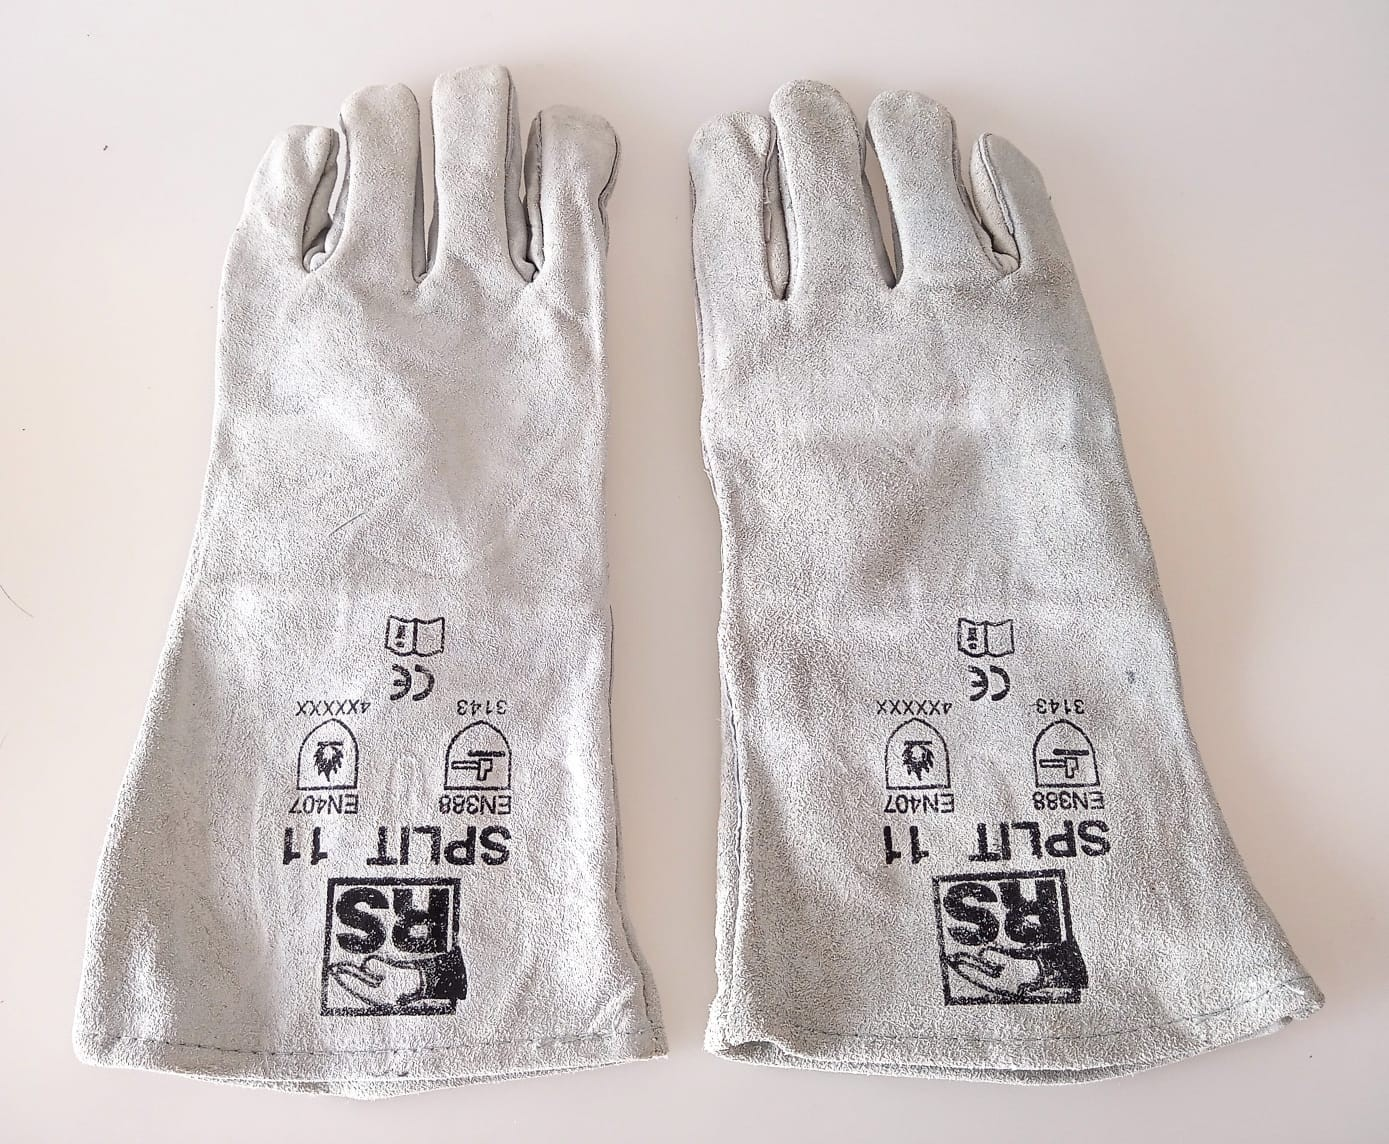 RS Split Professional High-Quality Heat Protection Gloves, 360 Pairs, Est. Original Retail €4,680, Tanna, DE